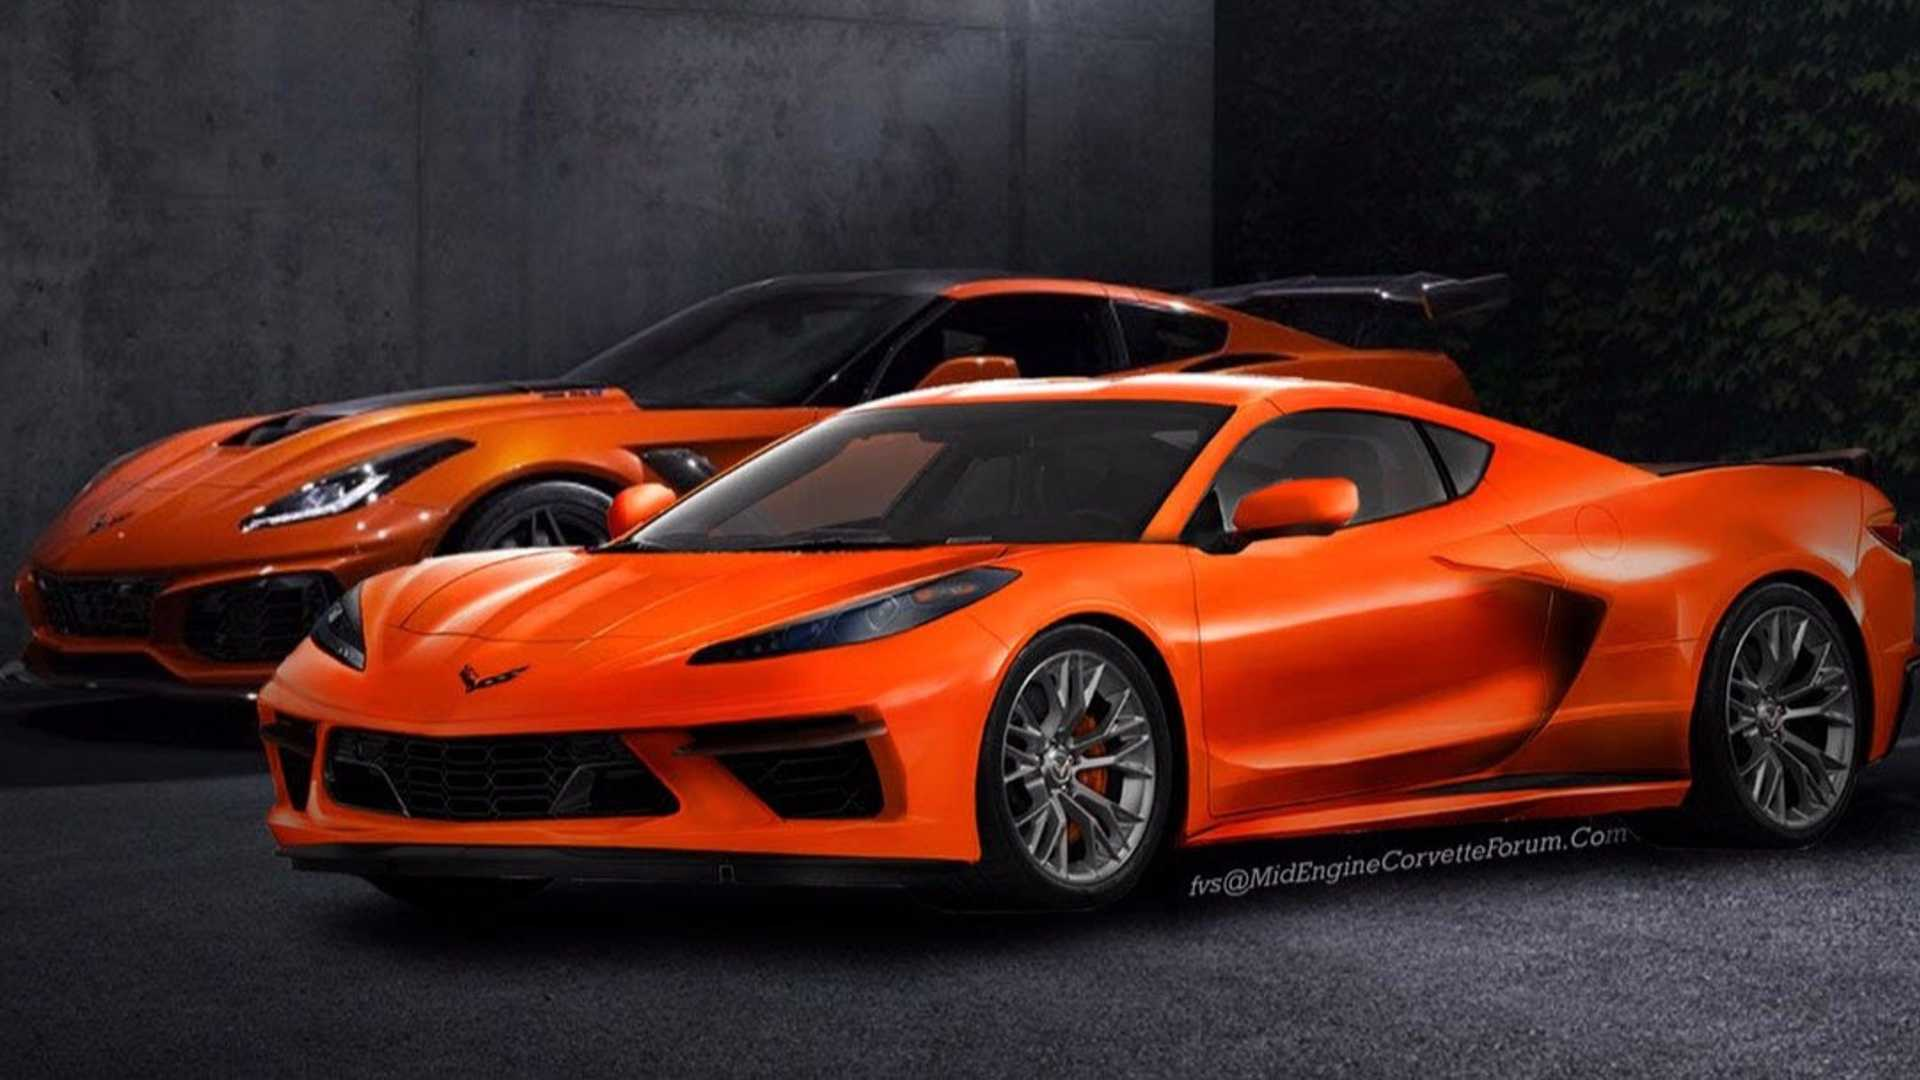 94 The Best 2020 Corvette Stingray Exterior